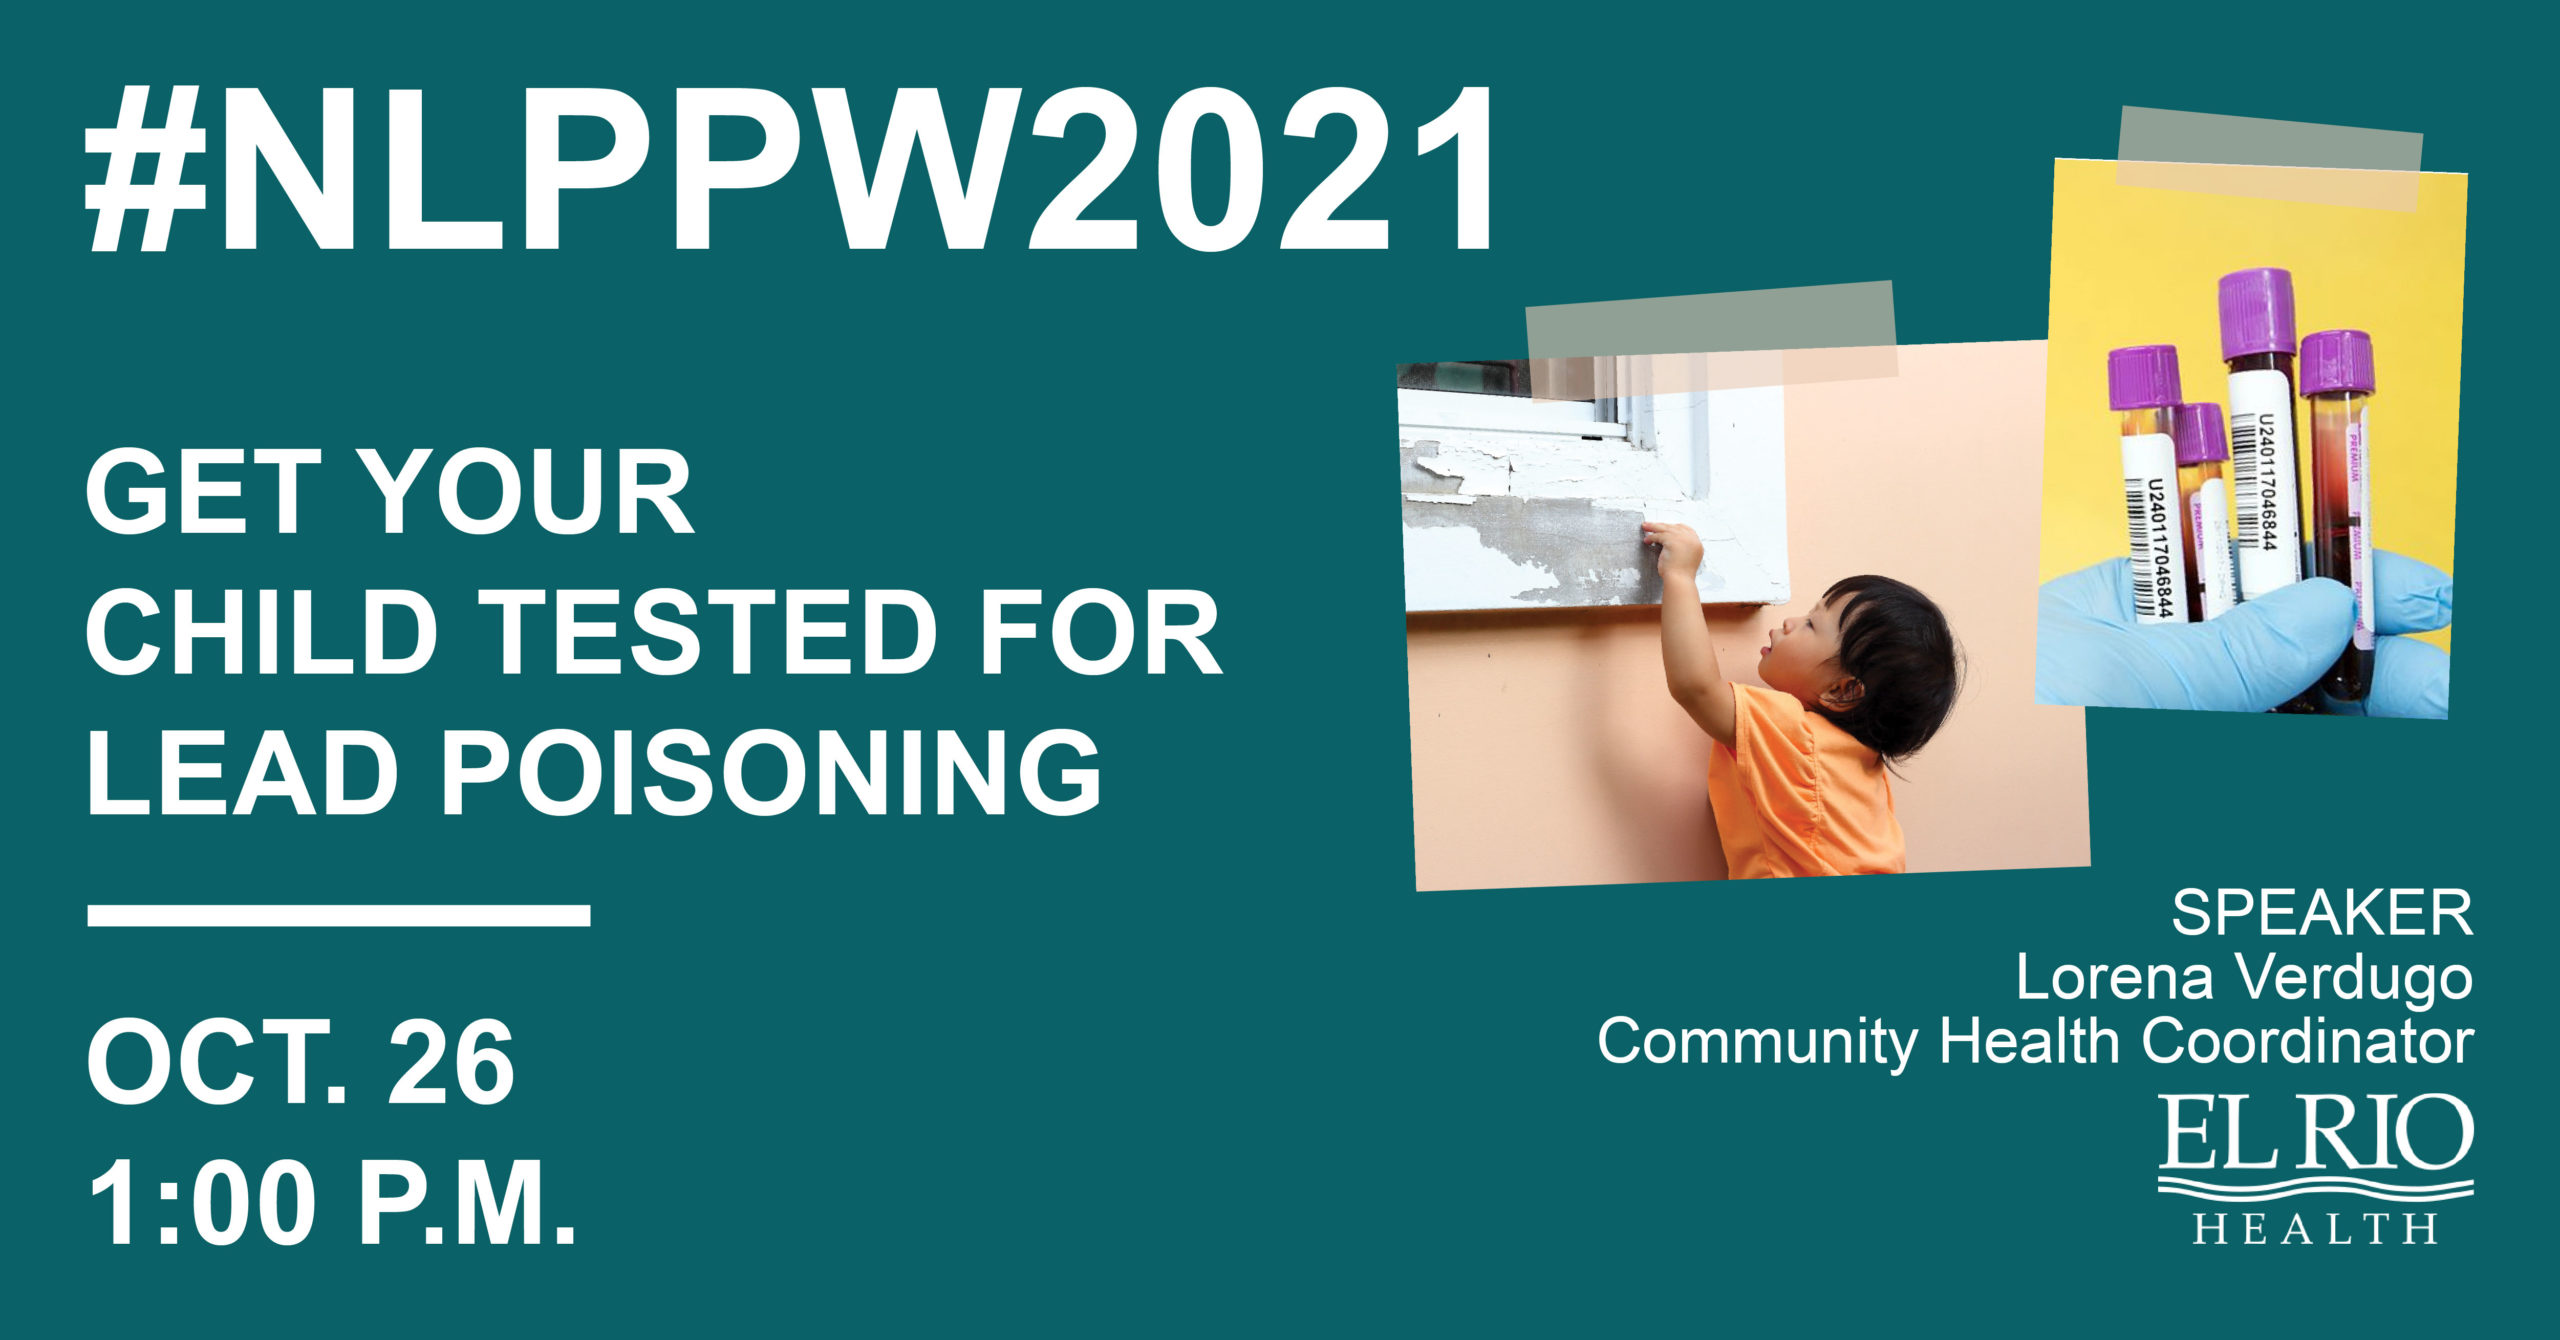 NLPPW2021 Get Your Child Tested For Lead Poisoning